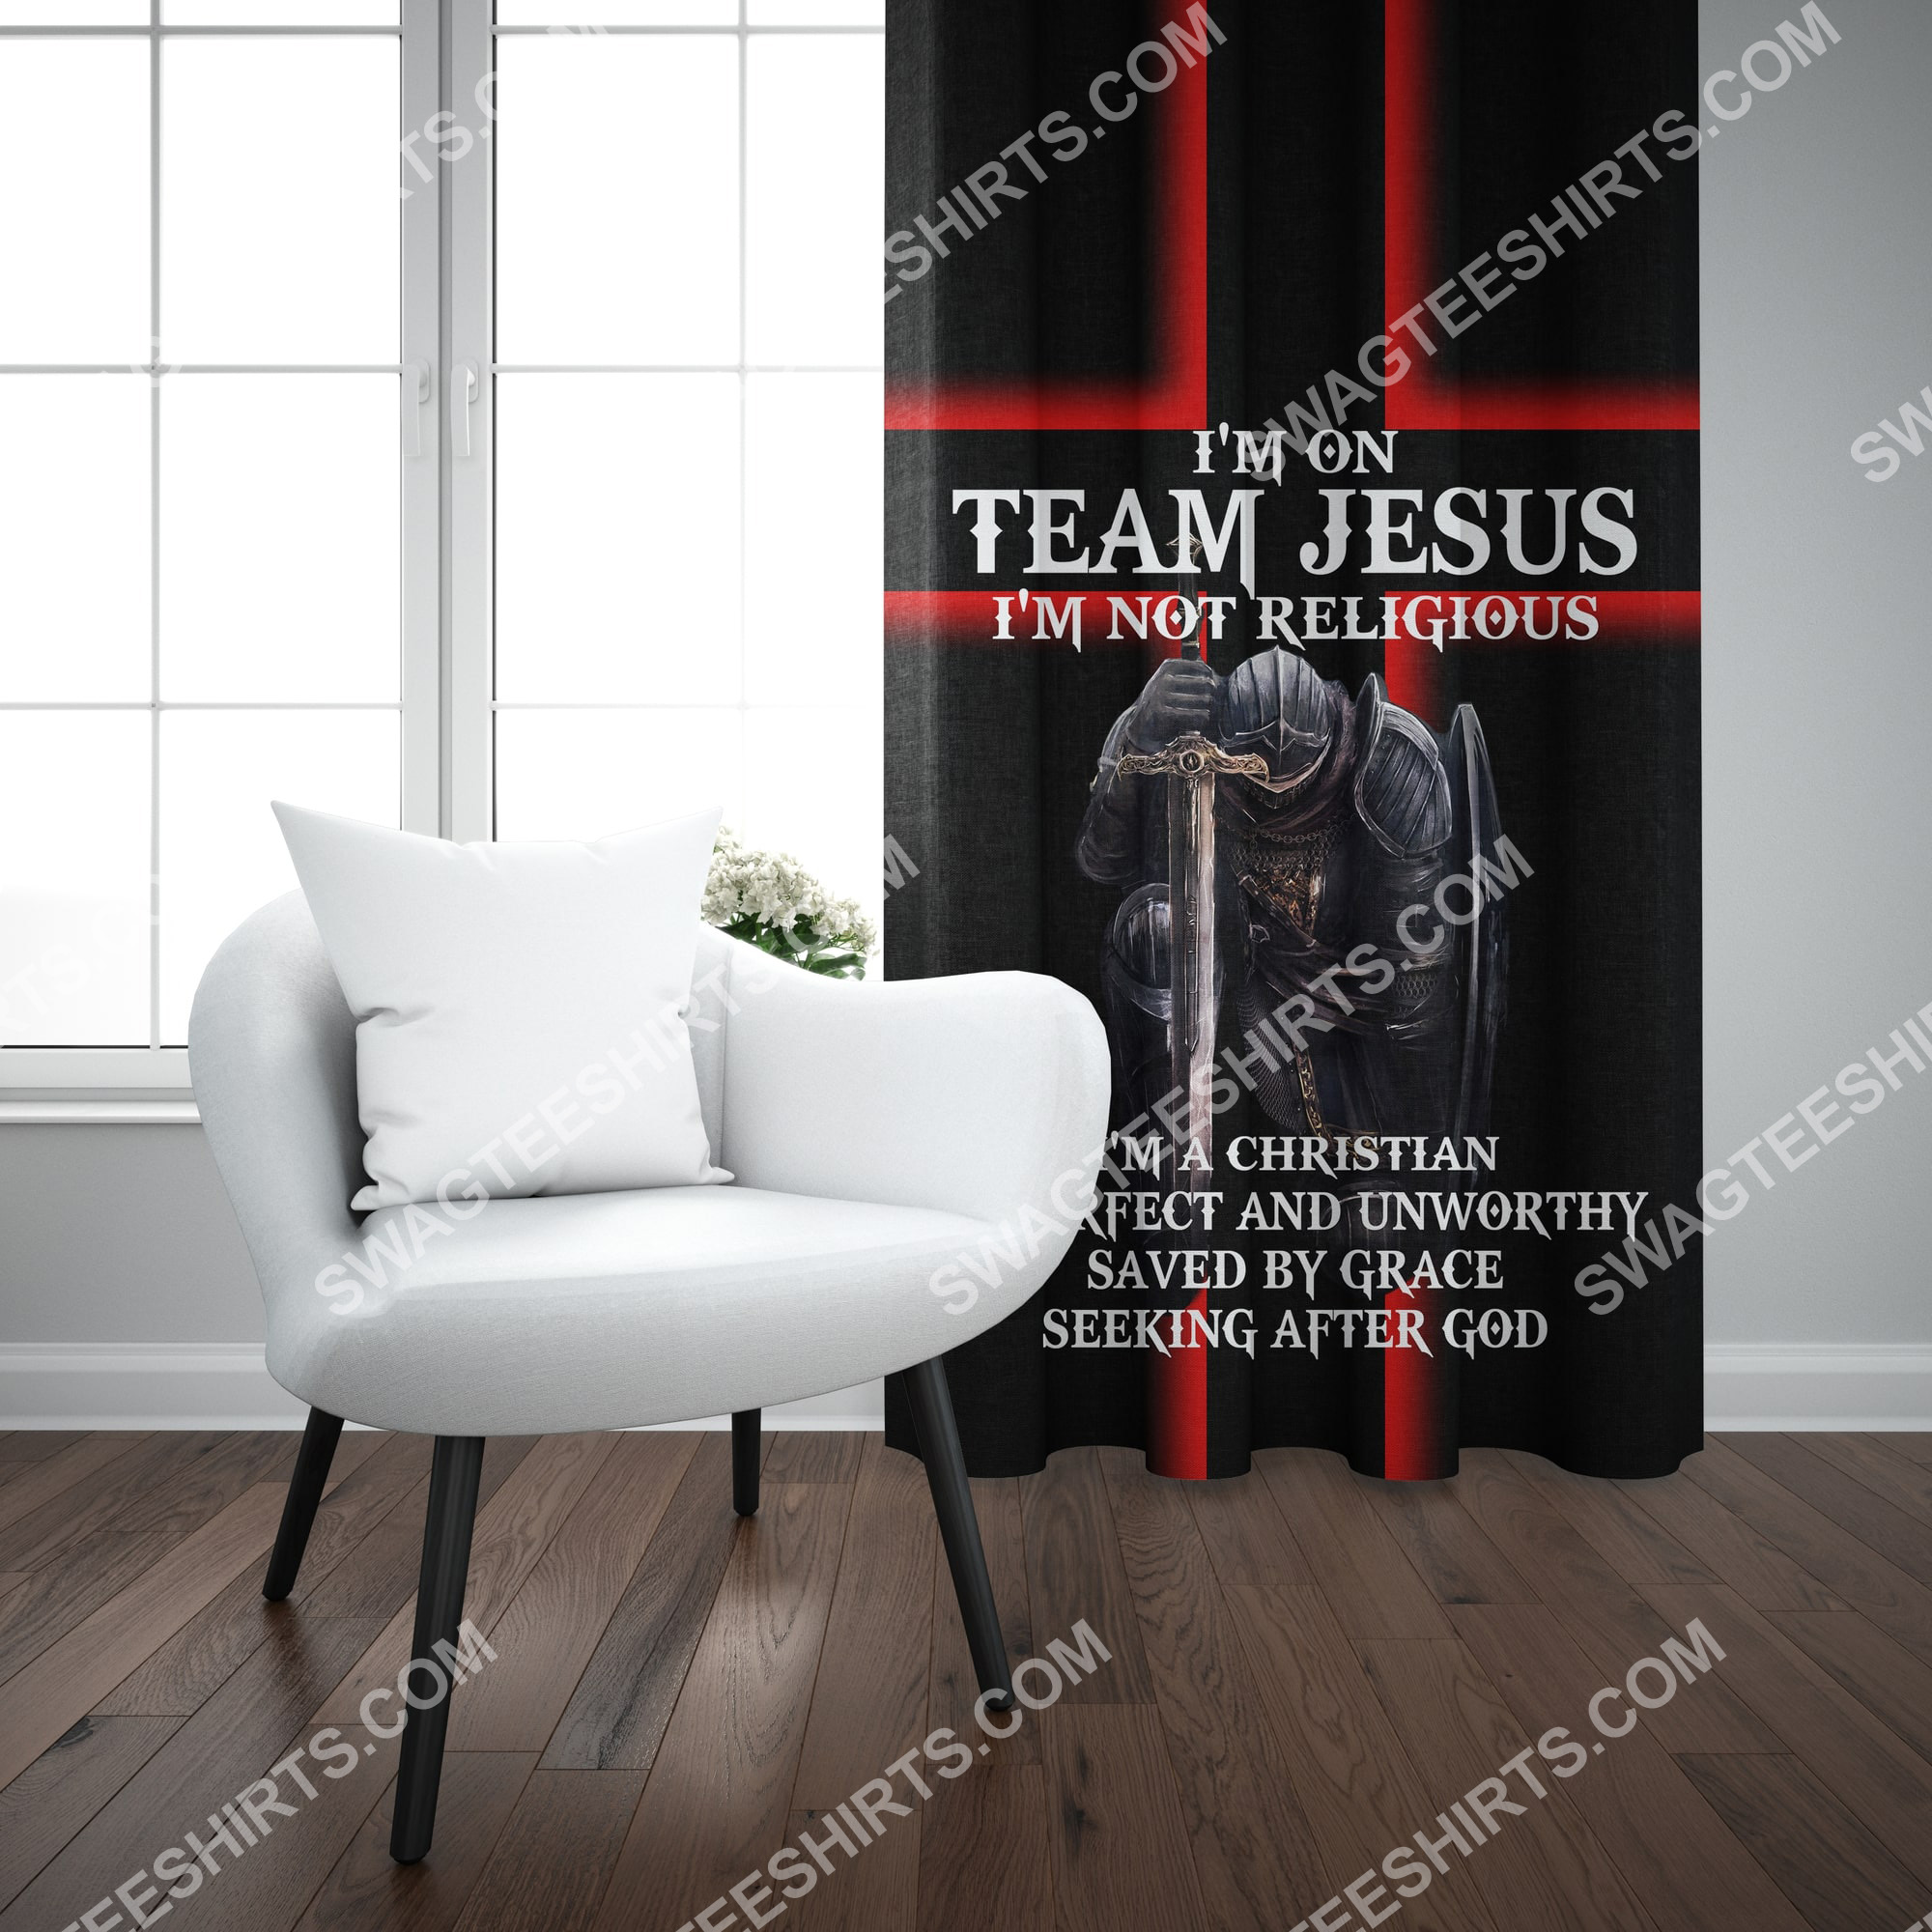 i'm on team Jesus i'm not religious all over printed window curtains 3(1)